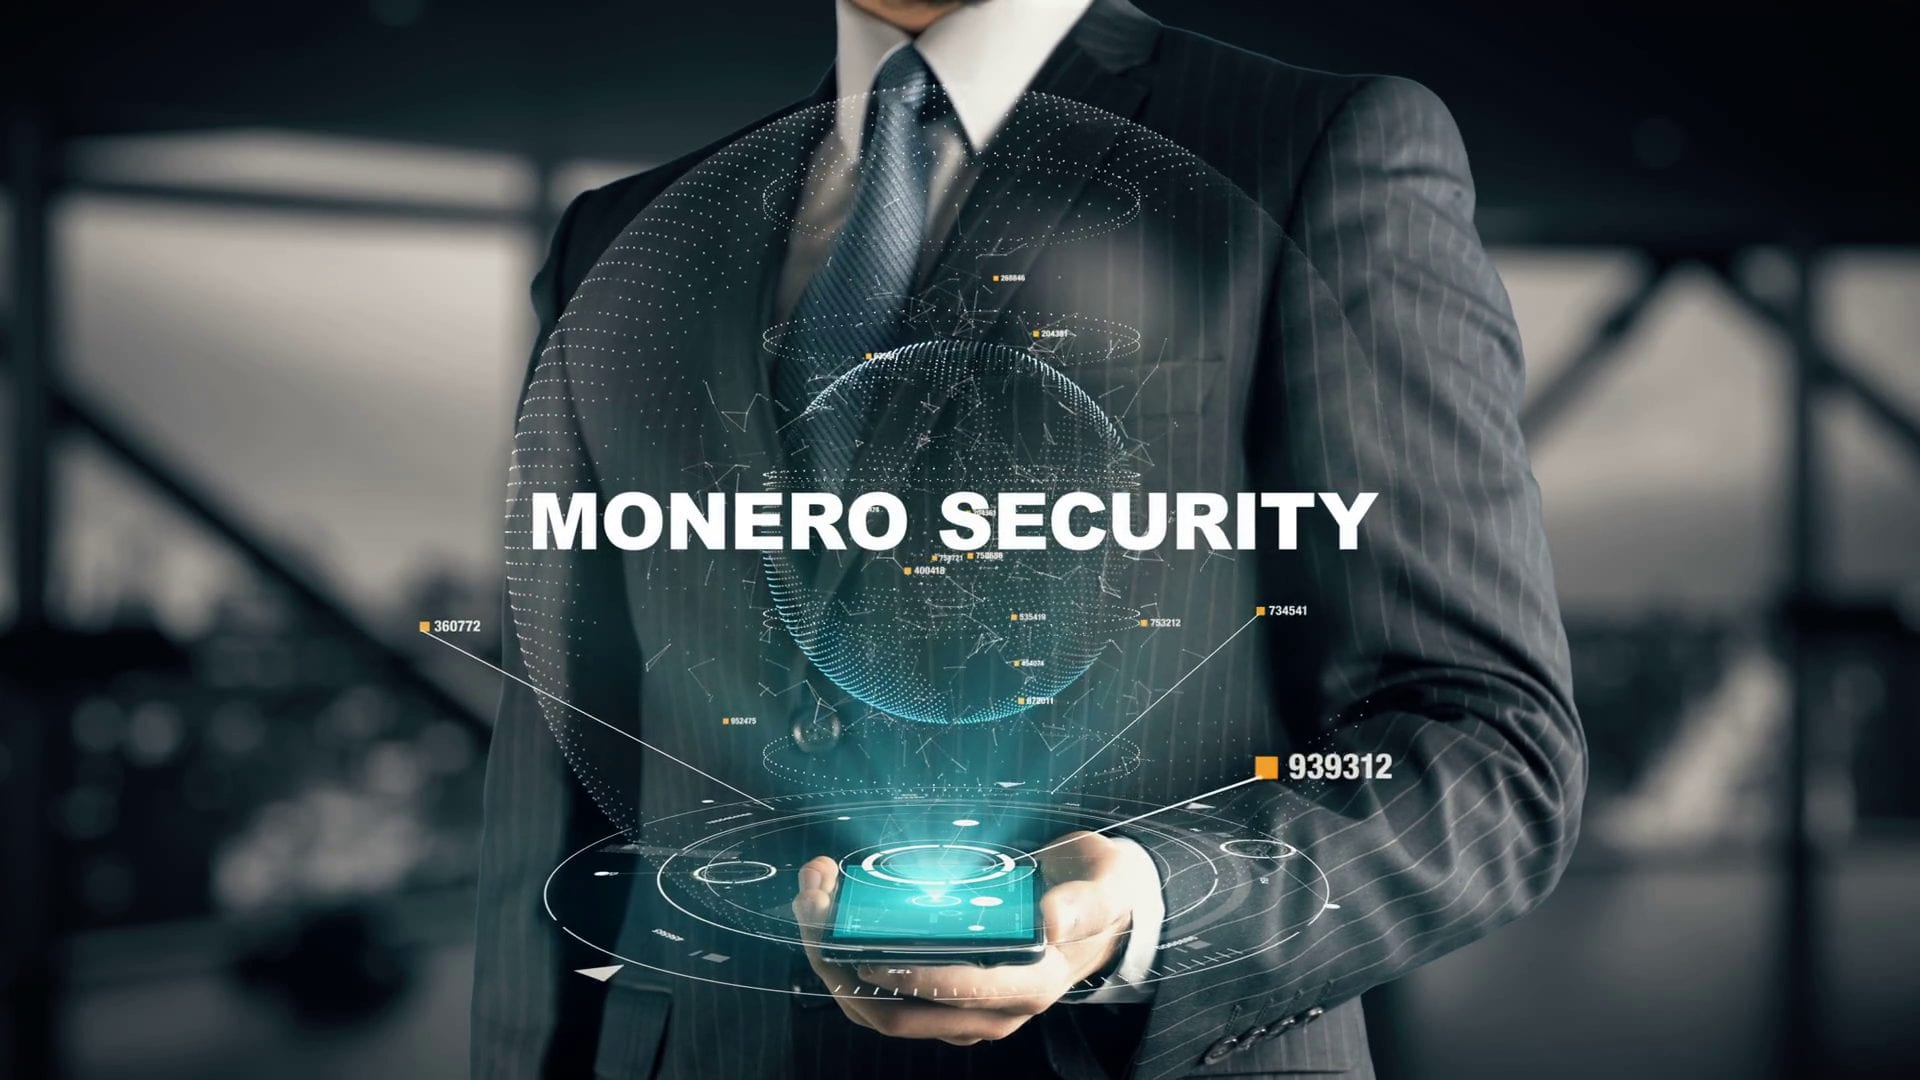 videoblocks businessman with monero security hologram concept helar1ybf thumbnail full14 2 - Monero Could Be The Coin That Satoshi Visualized Due To Its Privacy-Related Features